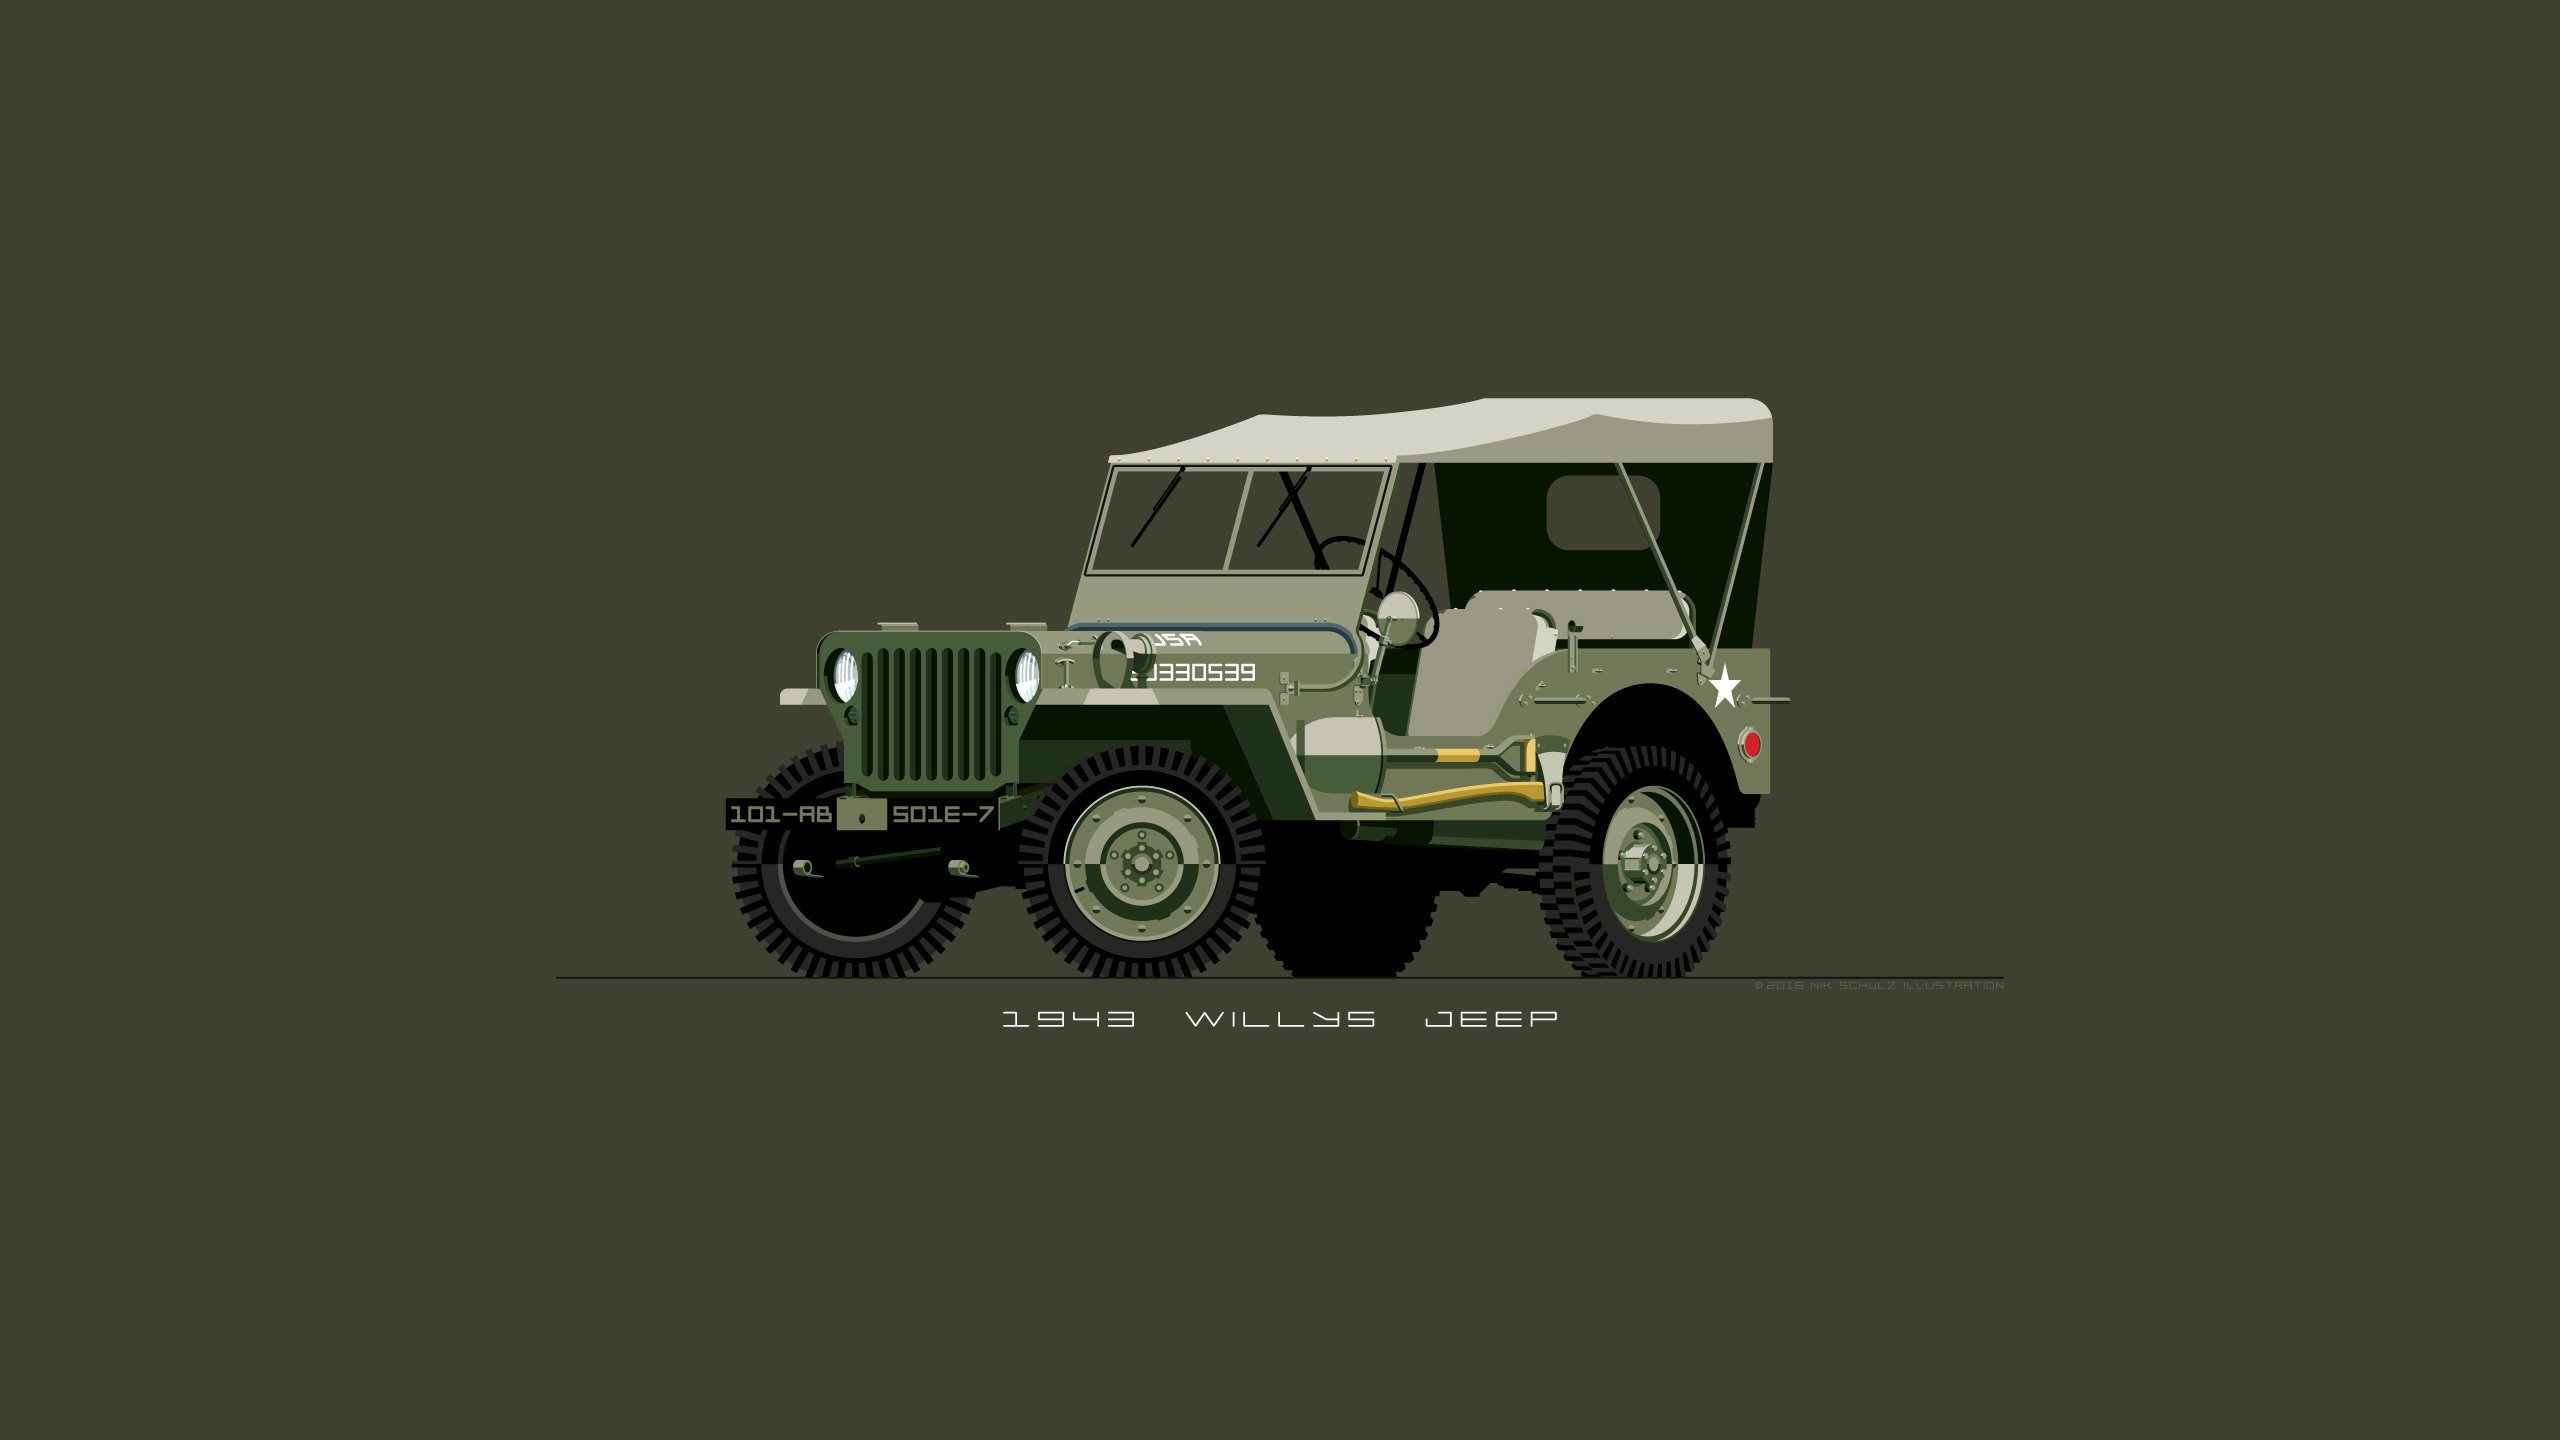 Res: 2560x1440, 1943 Willys Jeep in Olive Drab